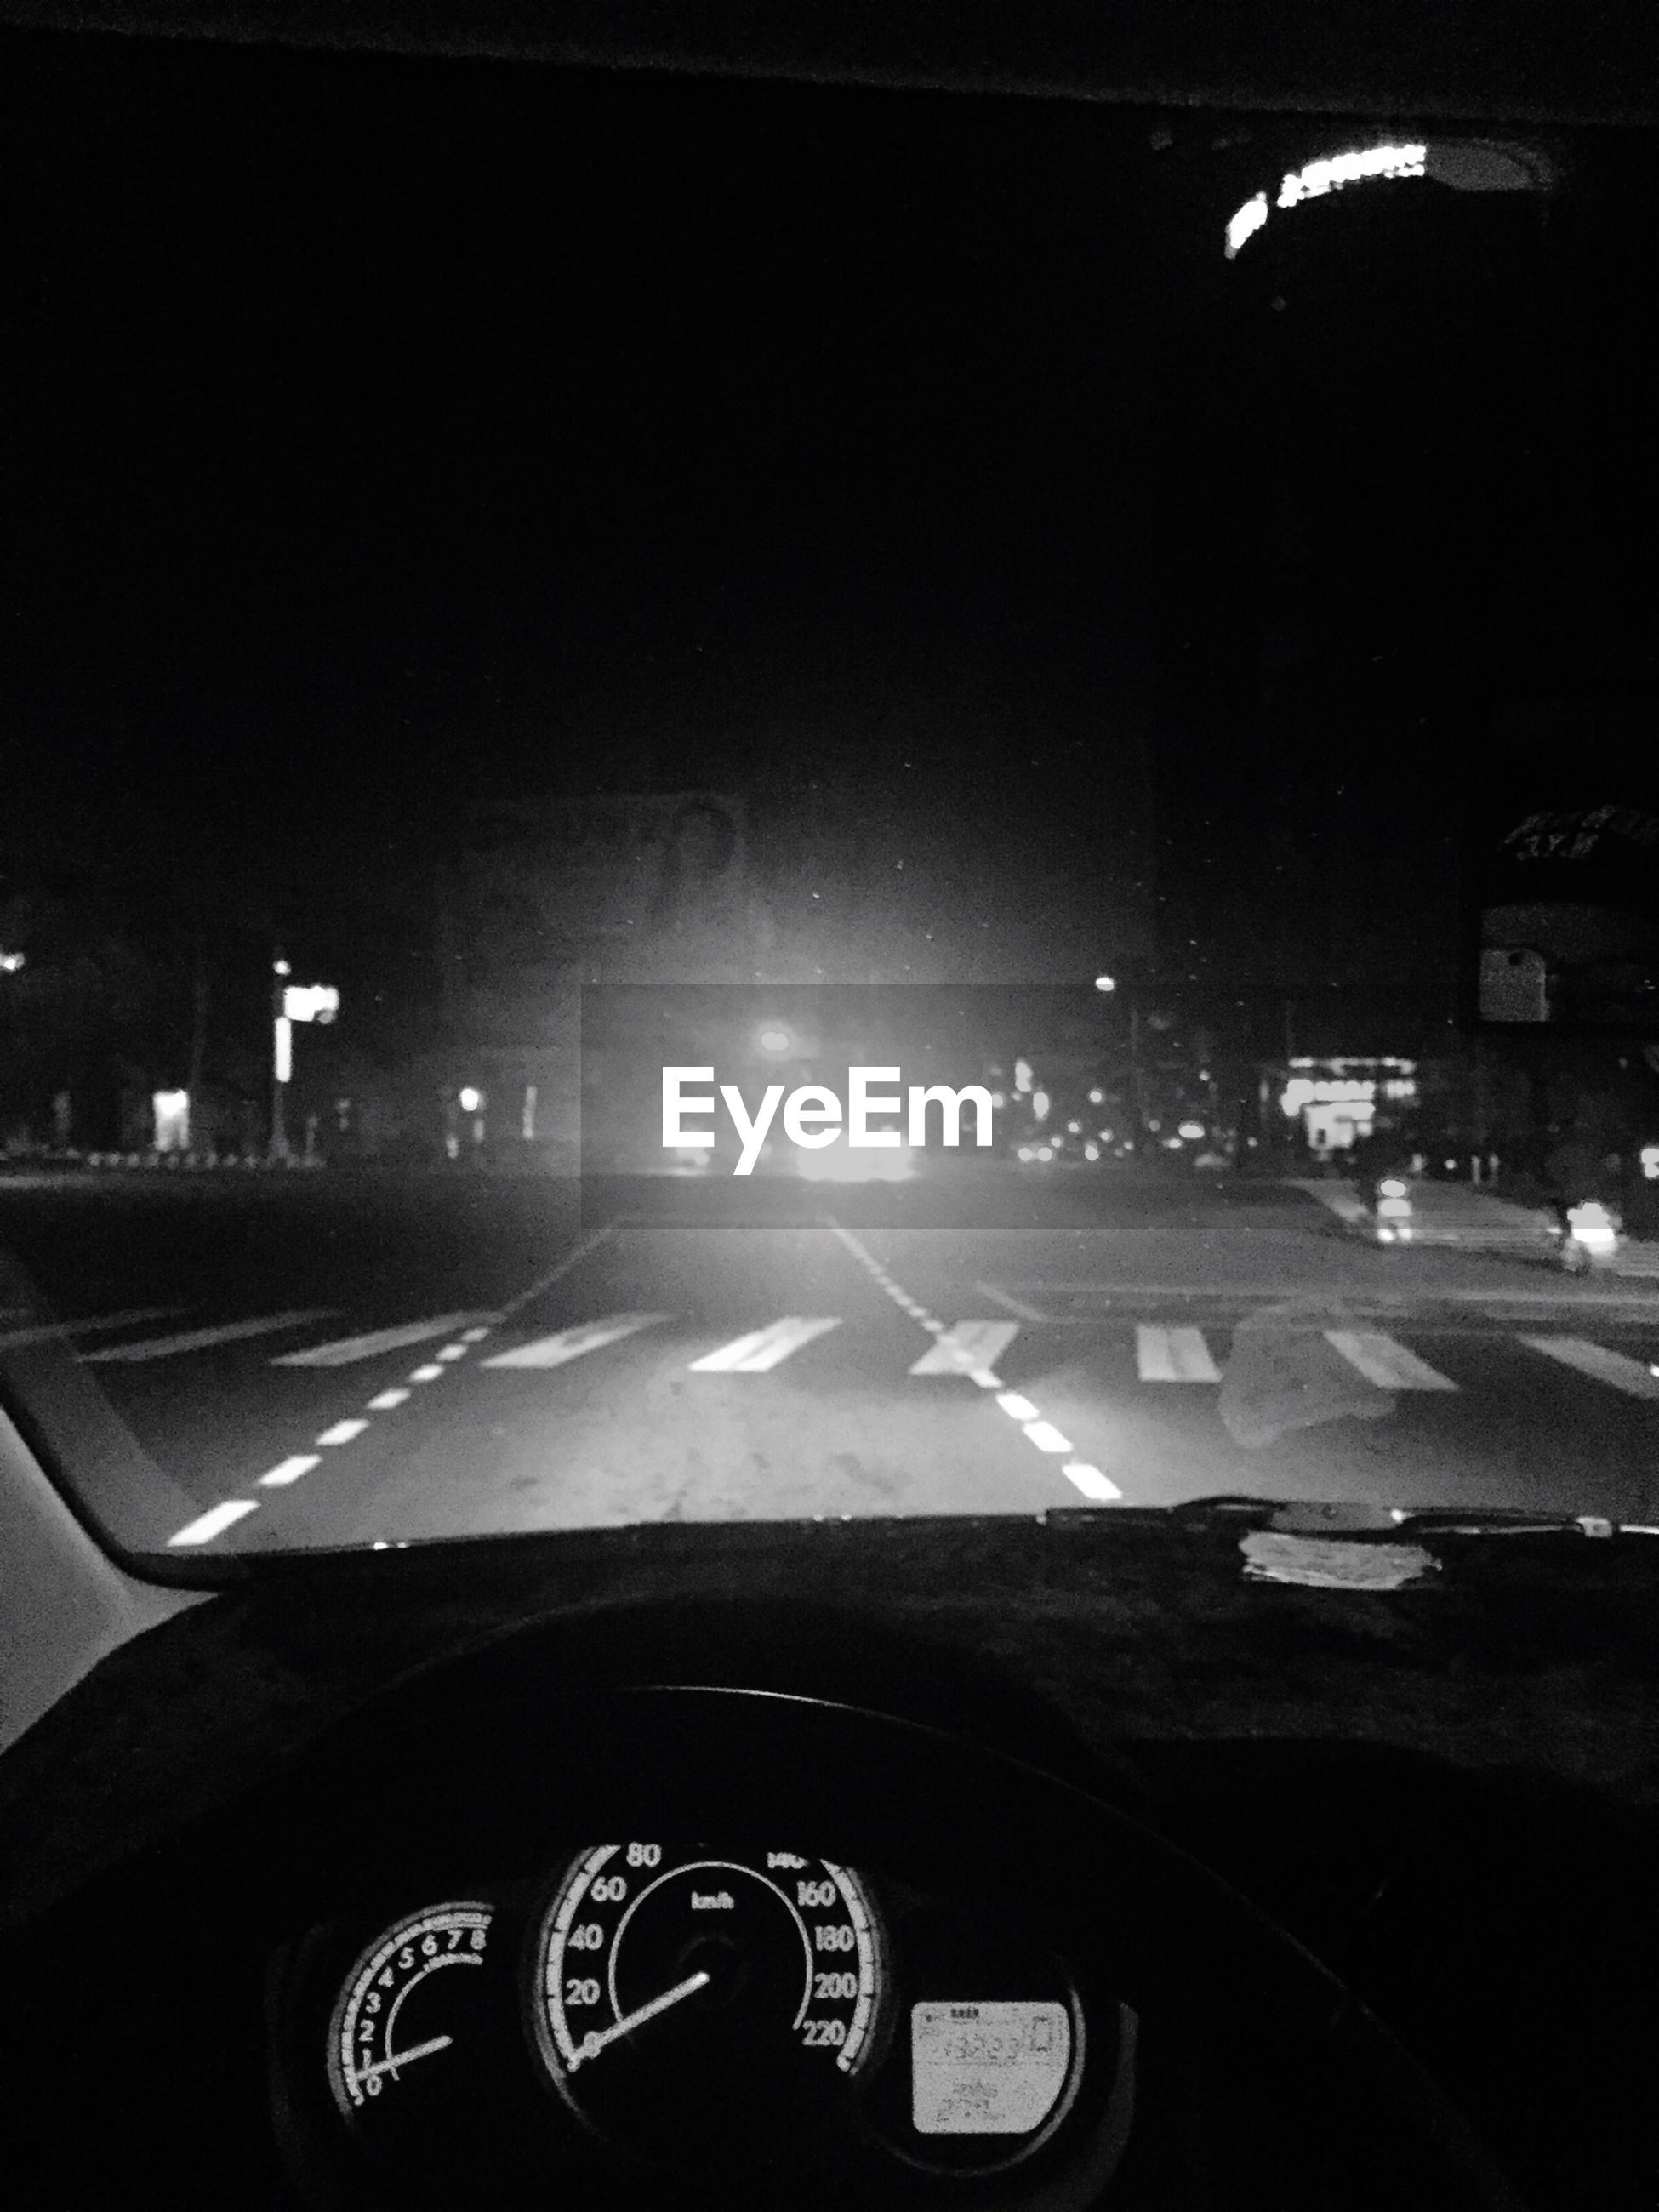 transportation, mode of transport, car, land vehicle, road, road marking, windshield, on the move, car interior, street, vehicle interior, travel, traffic, illuminated, night, glass - material, car point of view, motion, highway, city street